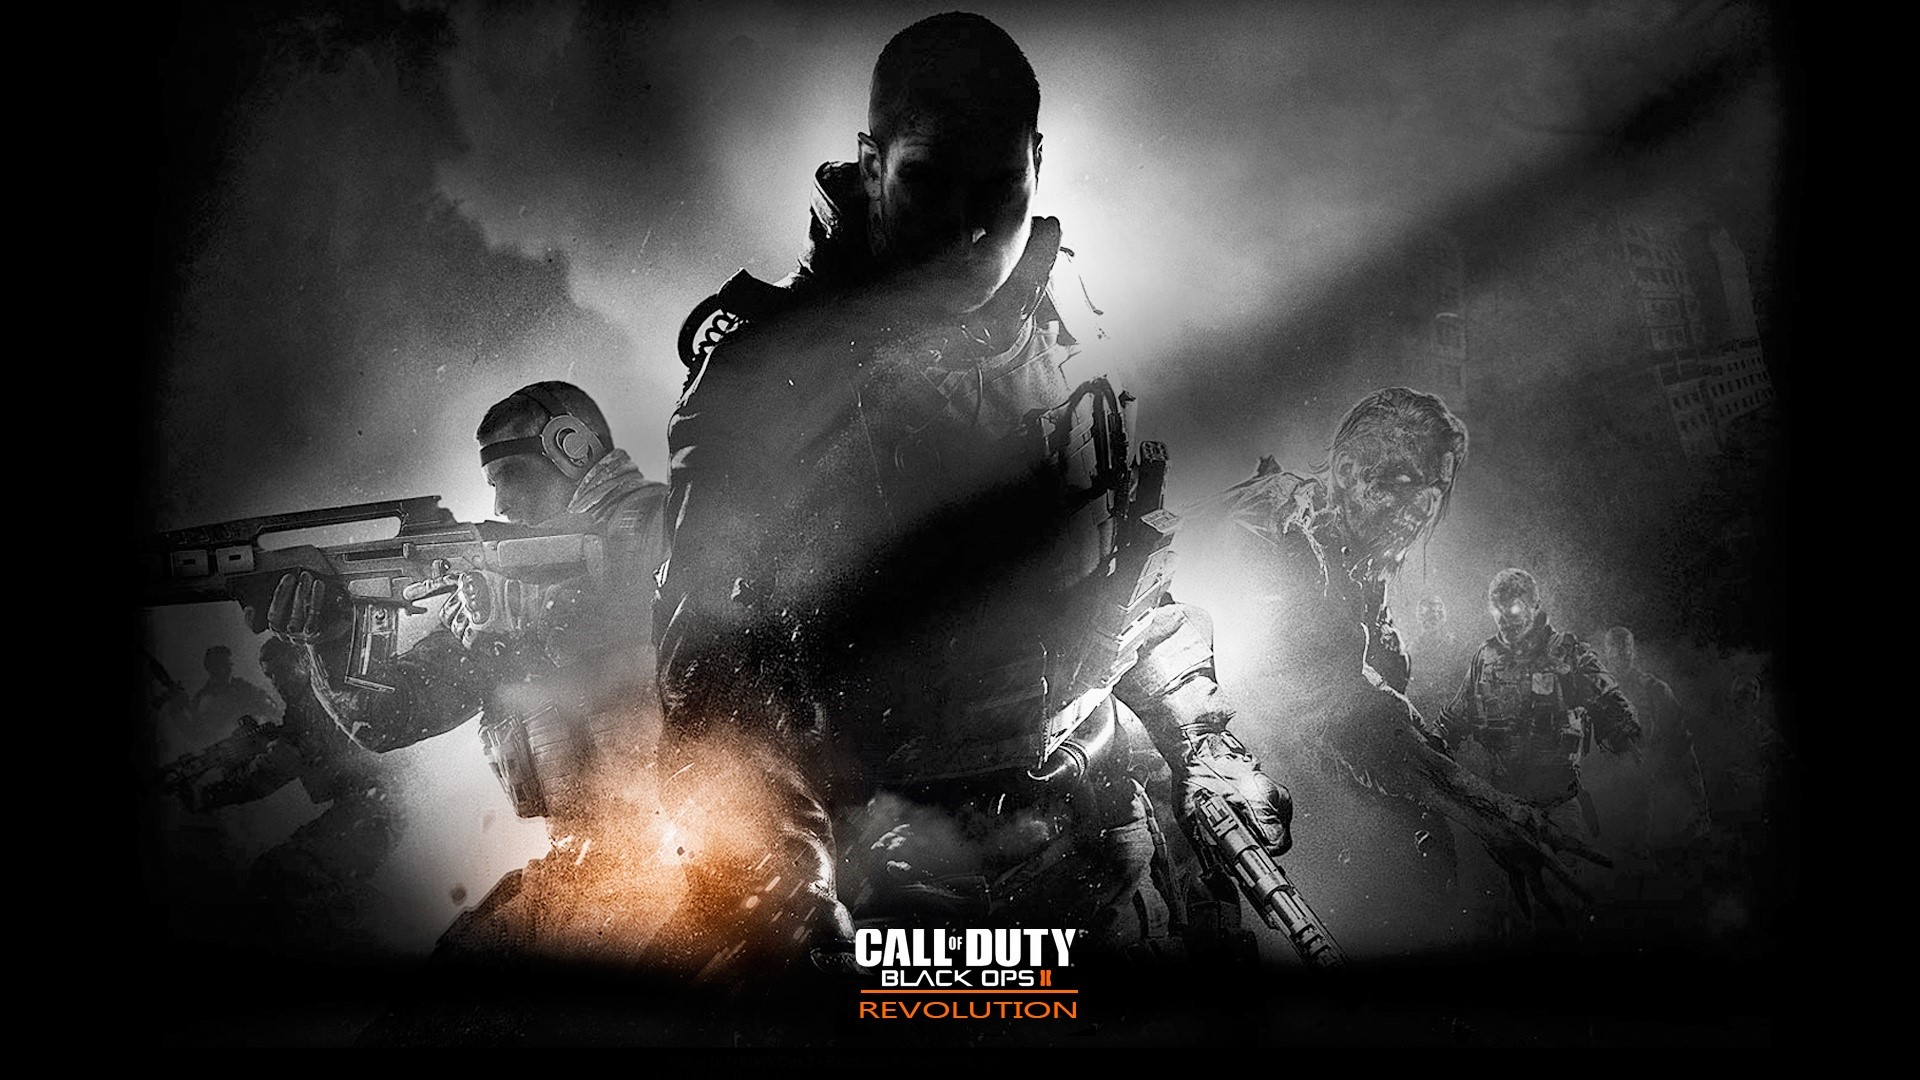 Fondo de pantalla de Call of Duty Black Ops 2 Revolution Imágenes